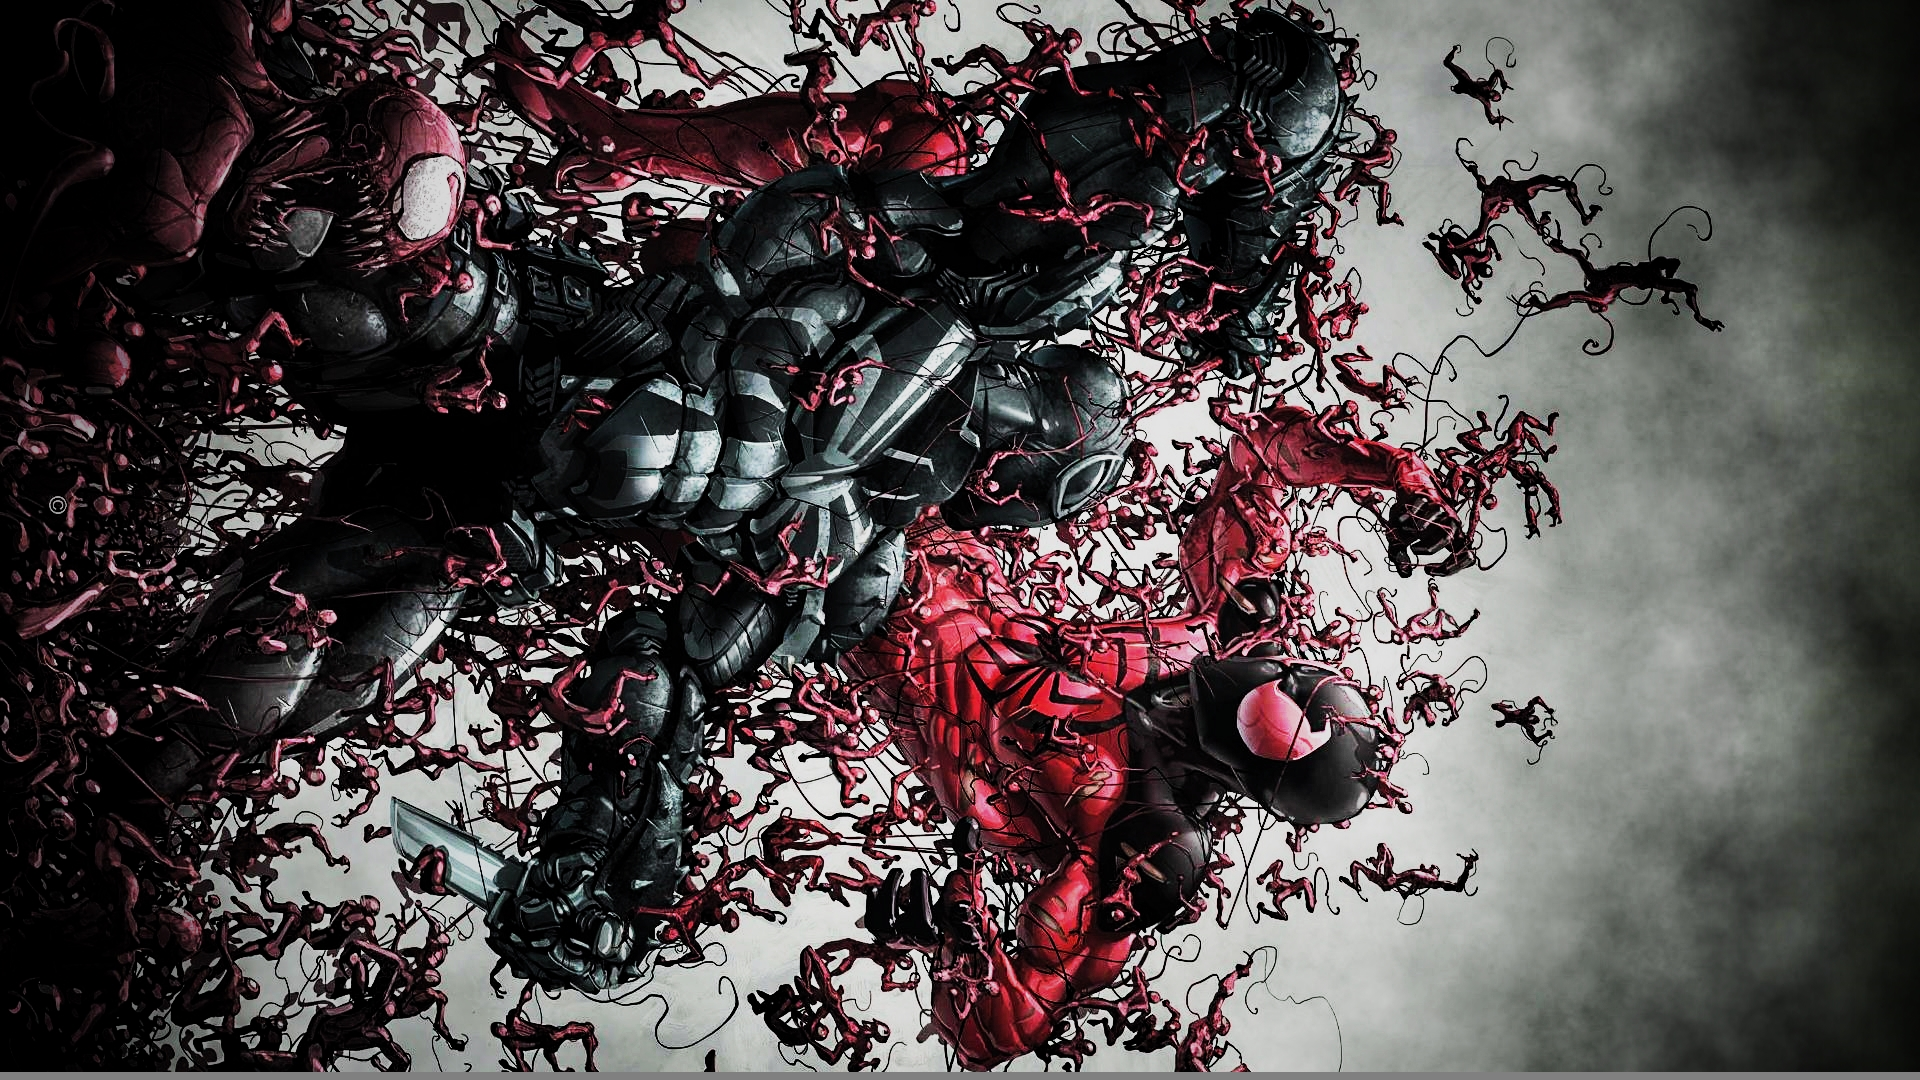 Anti Venom vs Spiderman HD Wallpaper  Wallpaper